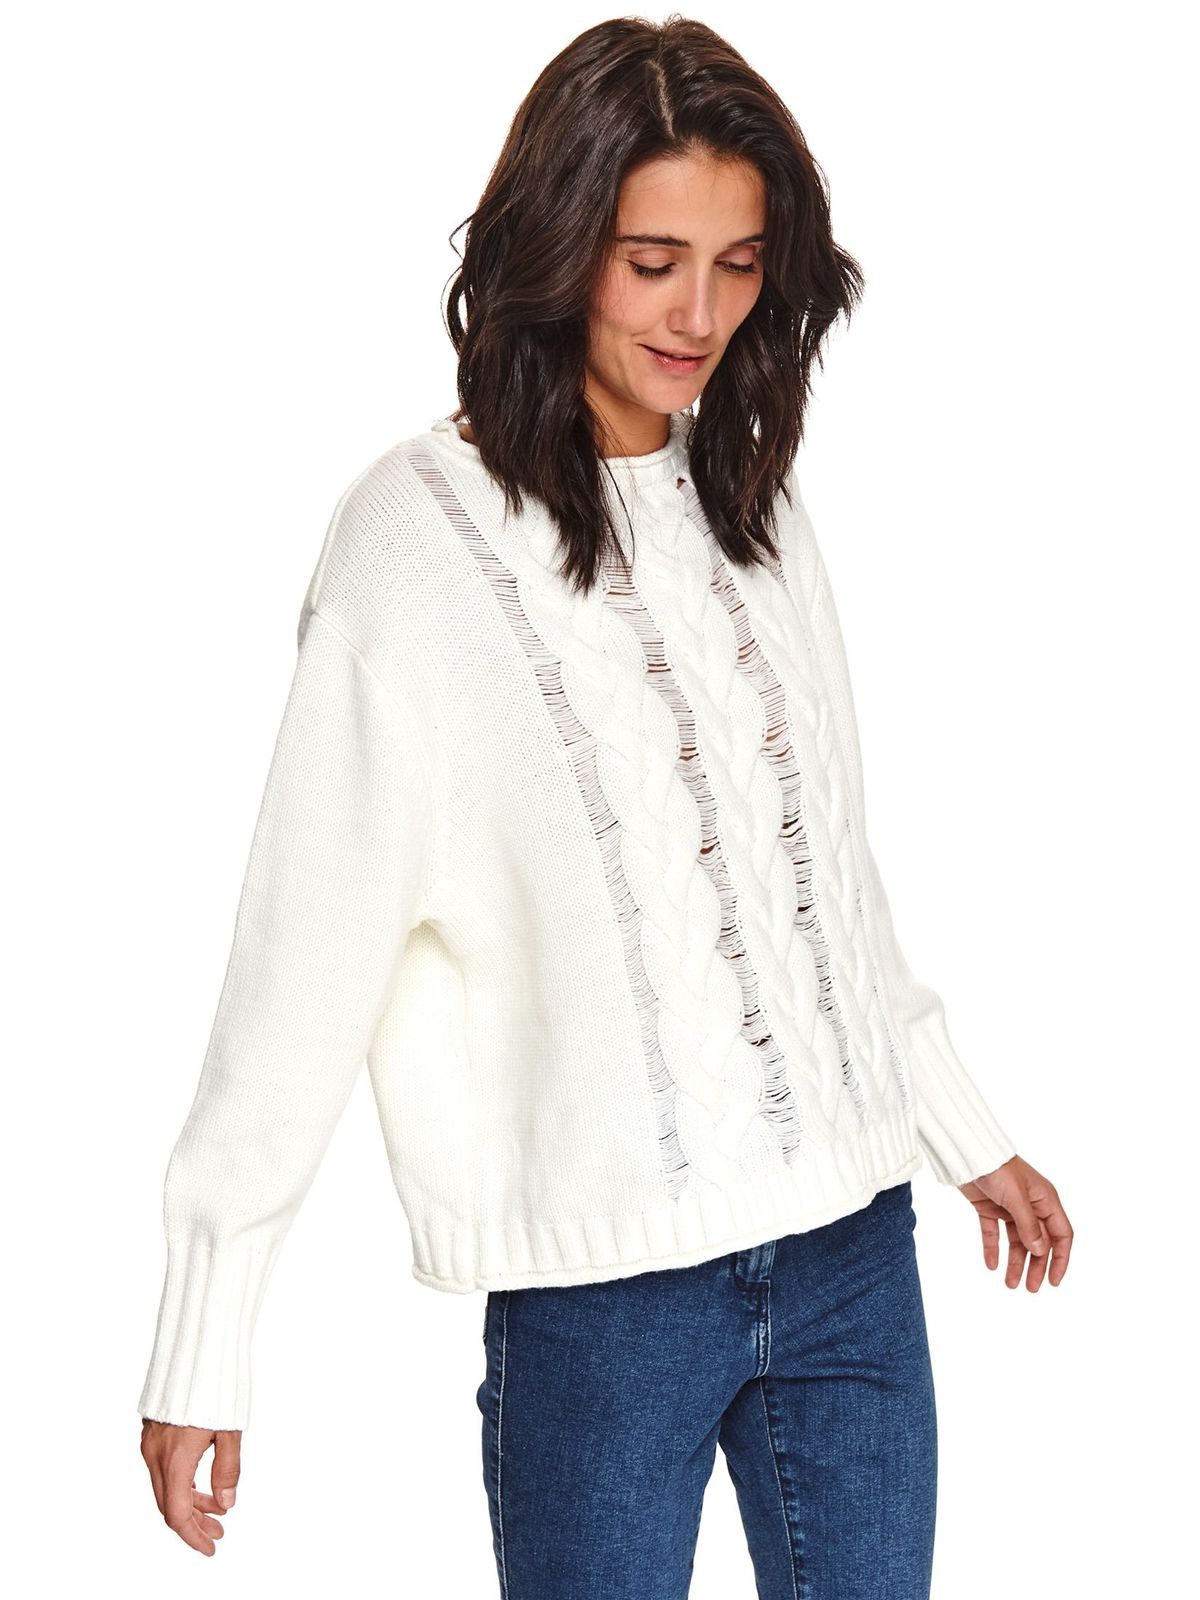 White sweater casual with easy cut knitted fabric